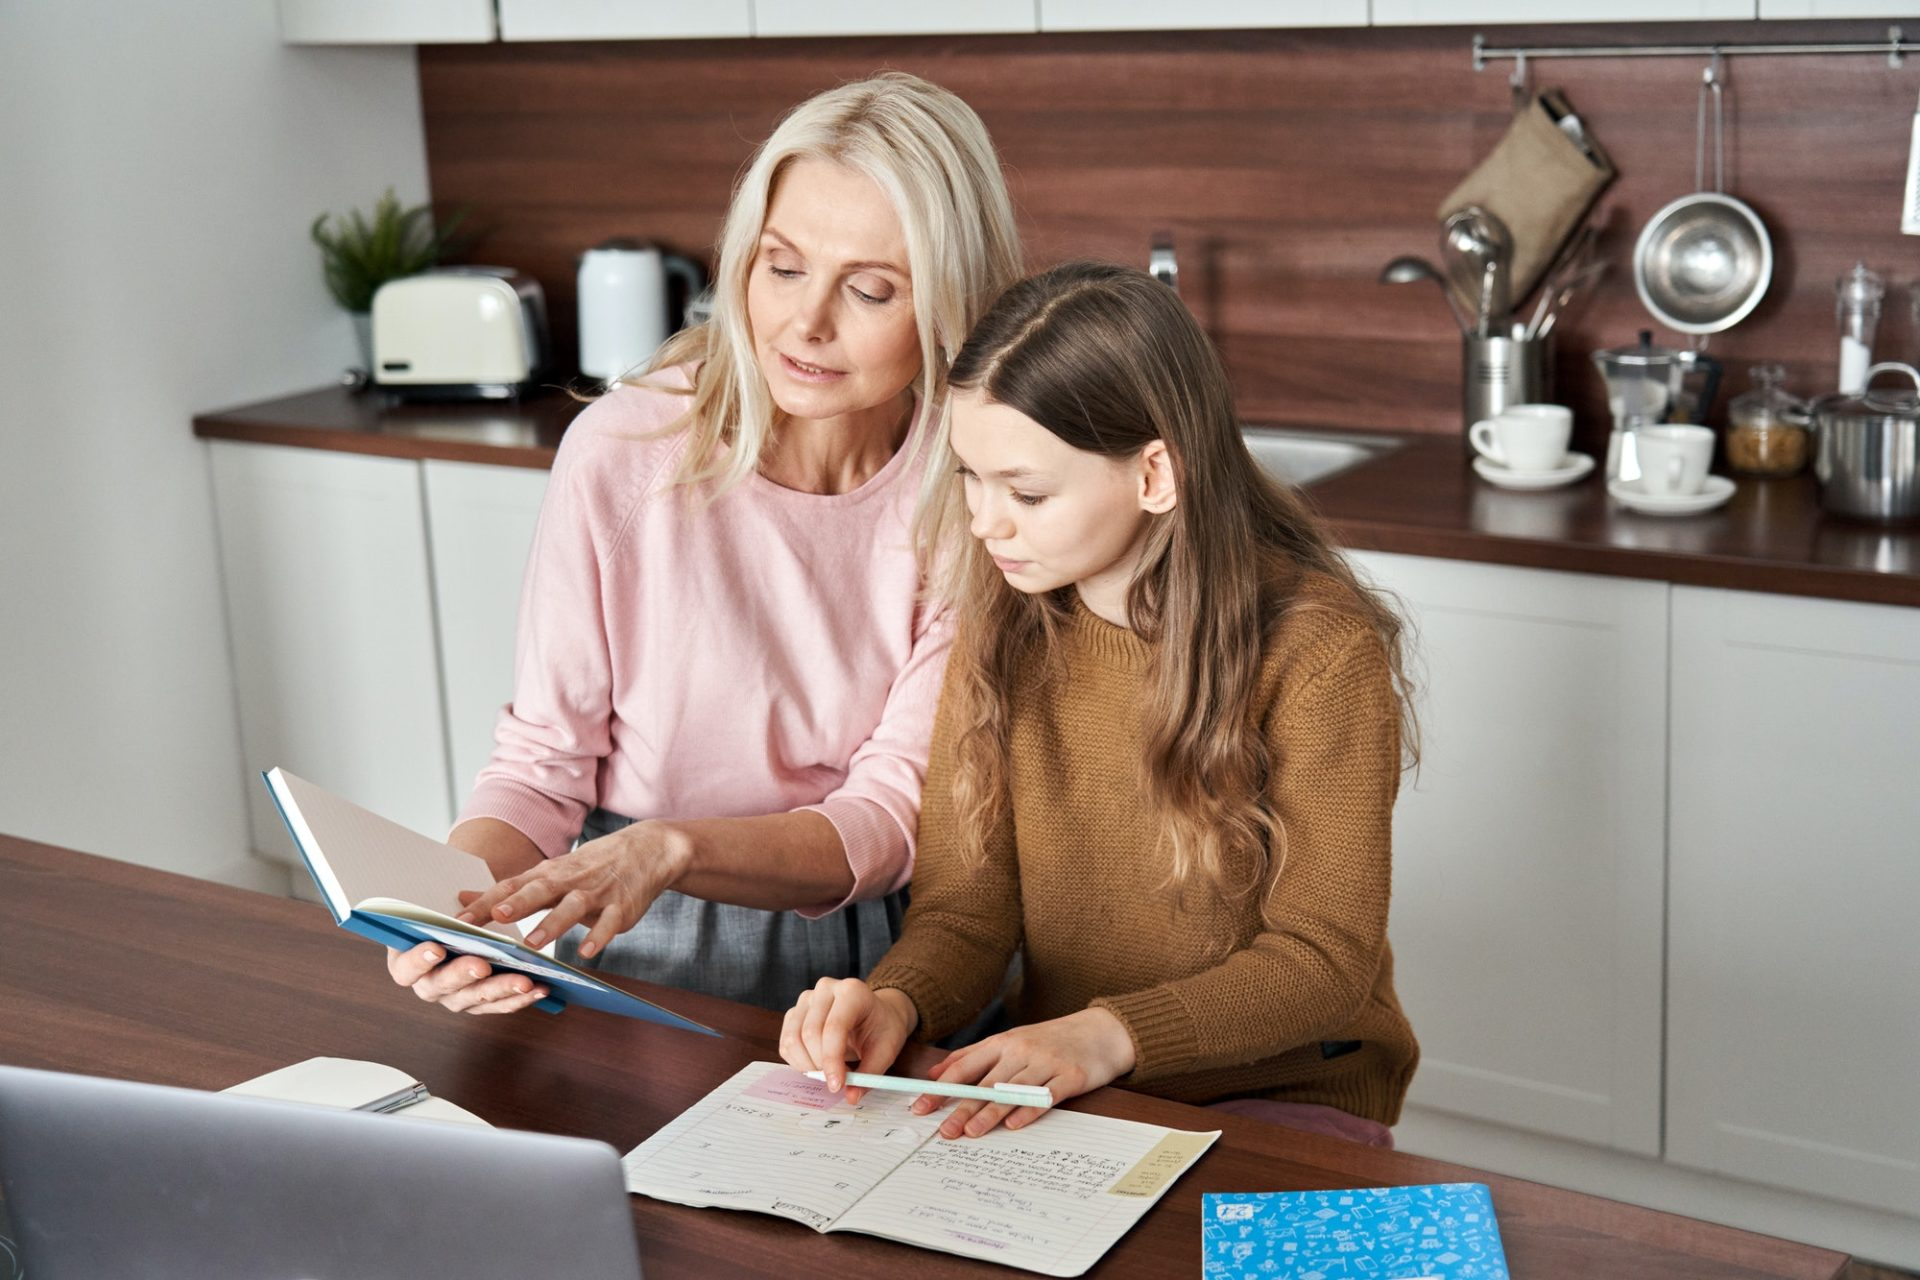 Teen child daughter studying at home in kitchen with mom.